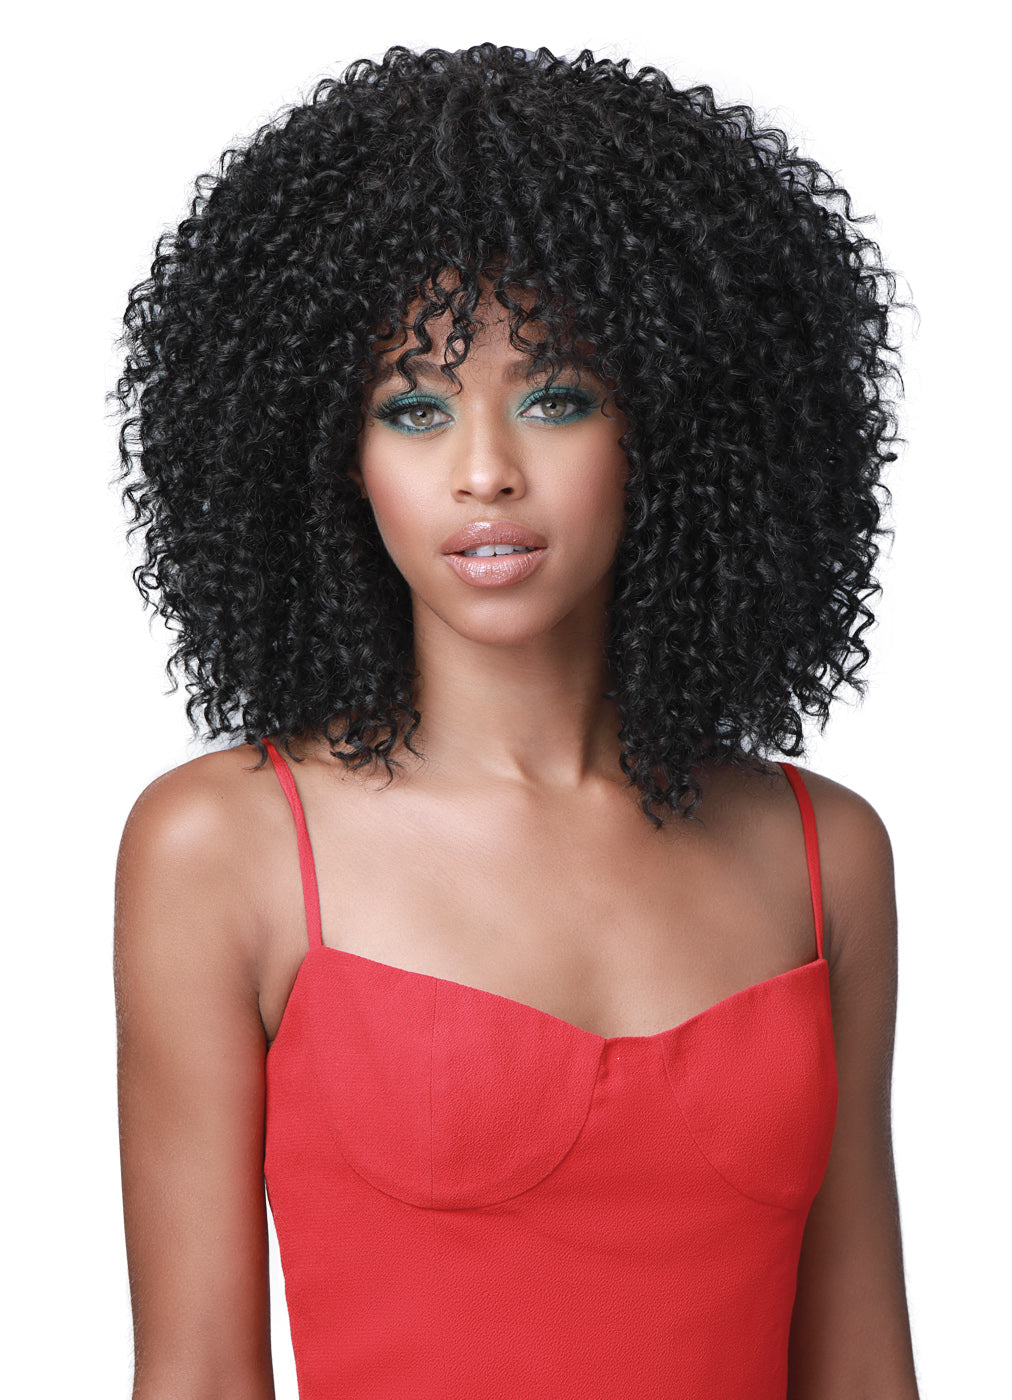 Bobbi Boss Human Hair Blend Miss Origin Wig MOG006 TINA